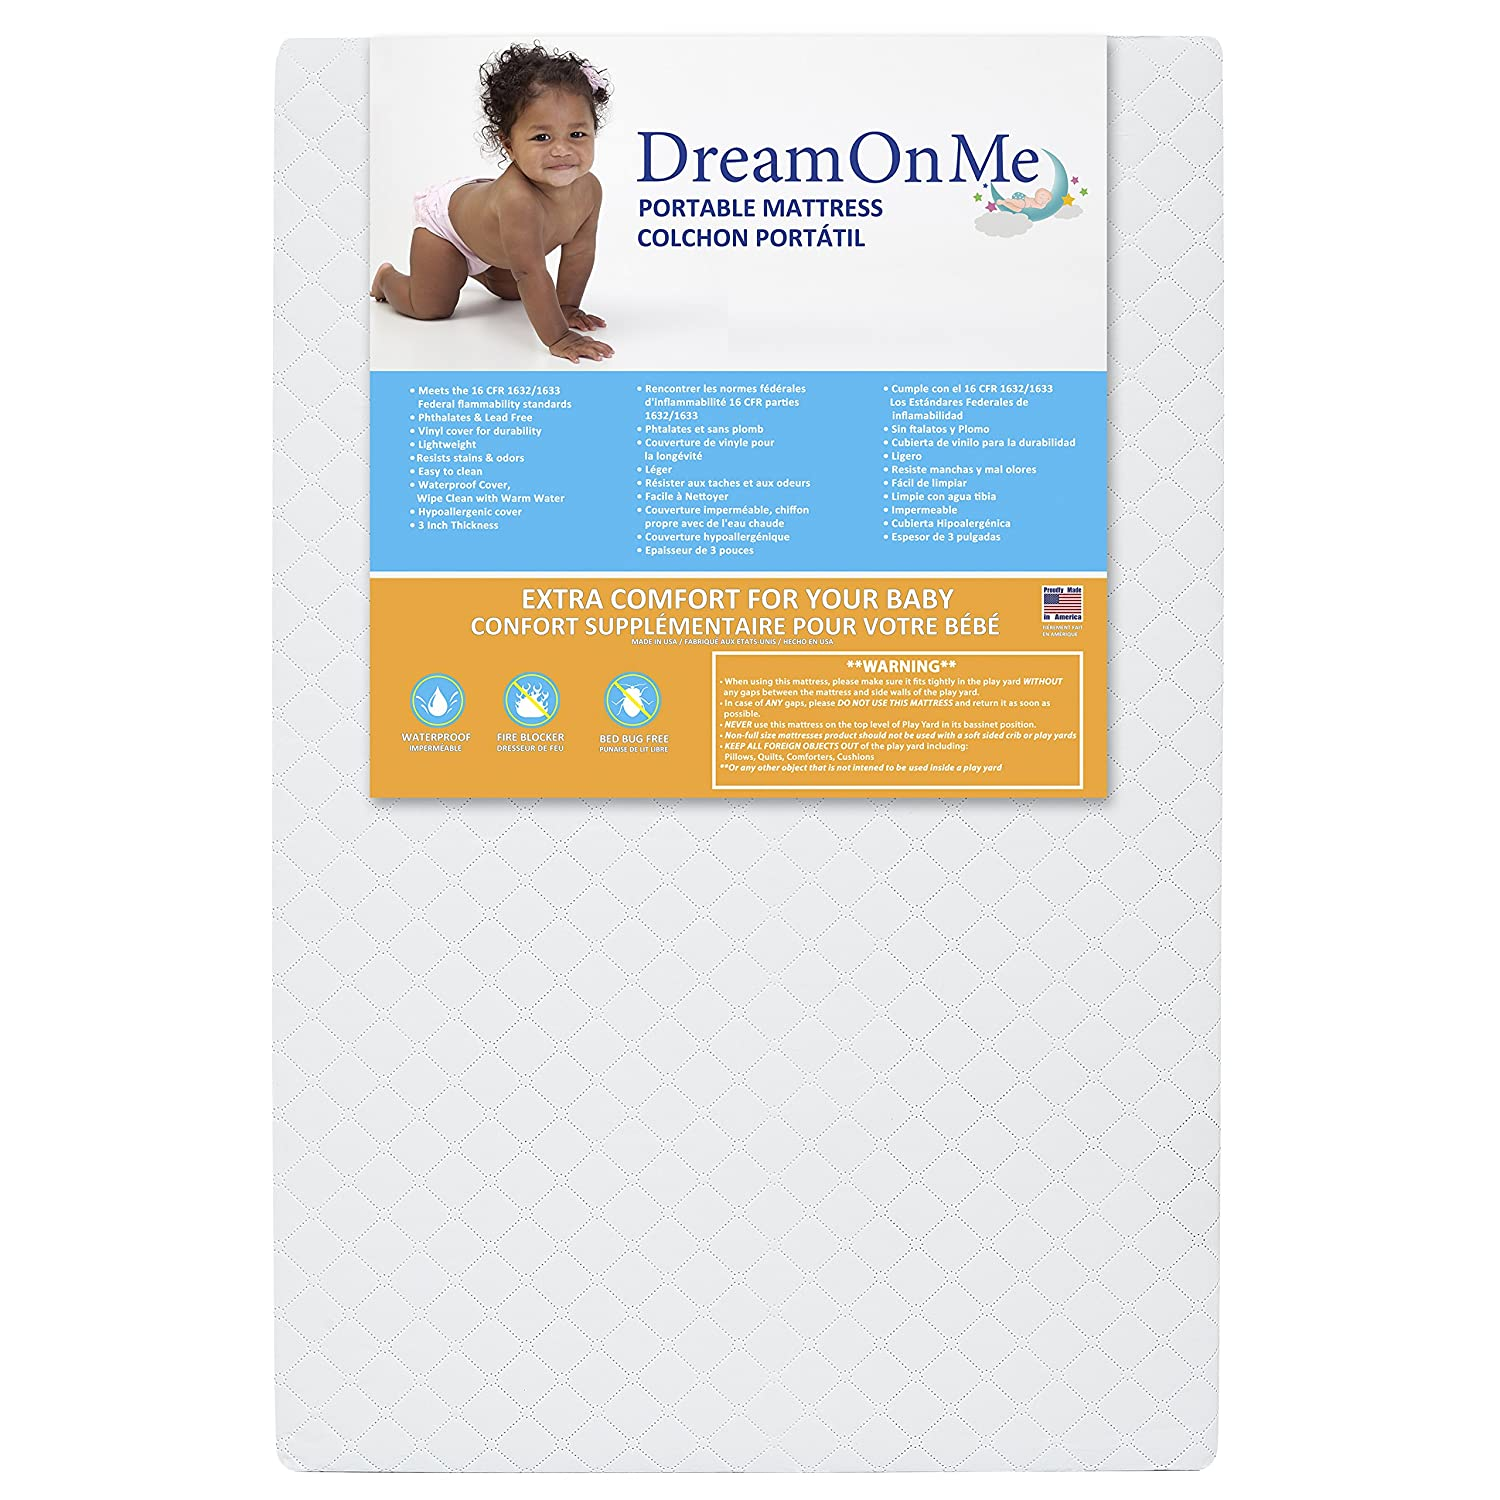 Dream On Me 3-Inch Extra Firm Portable Crib Mattress, White 24X